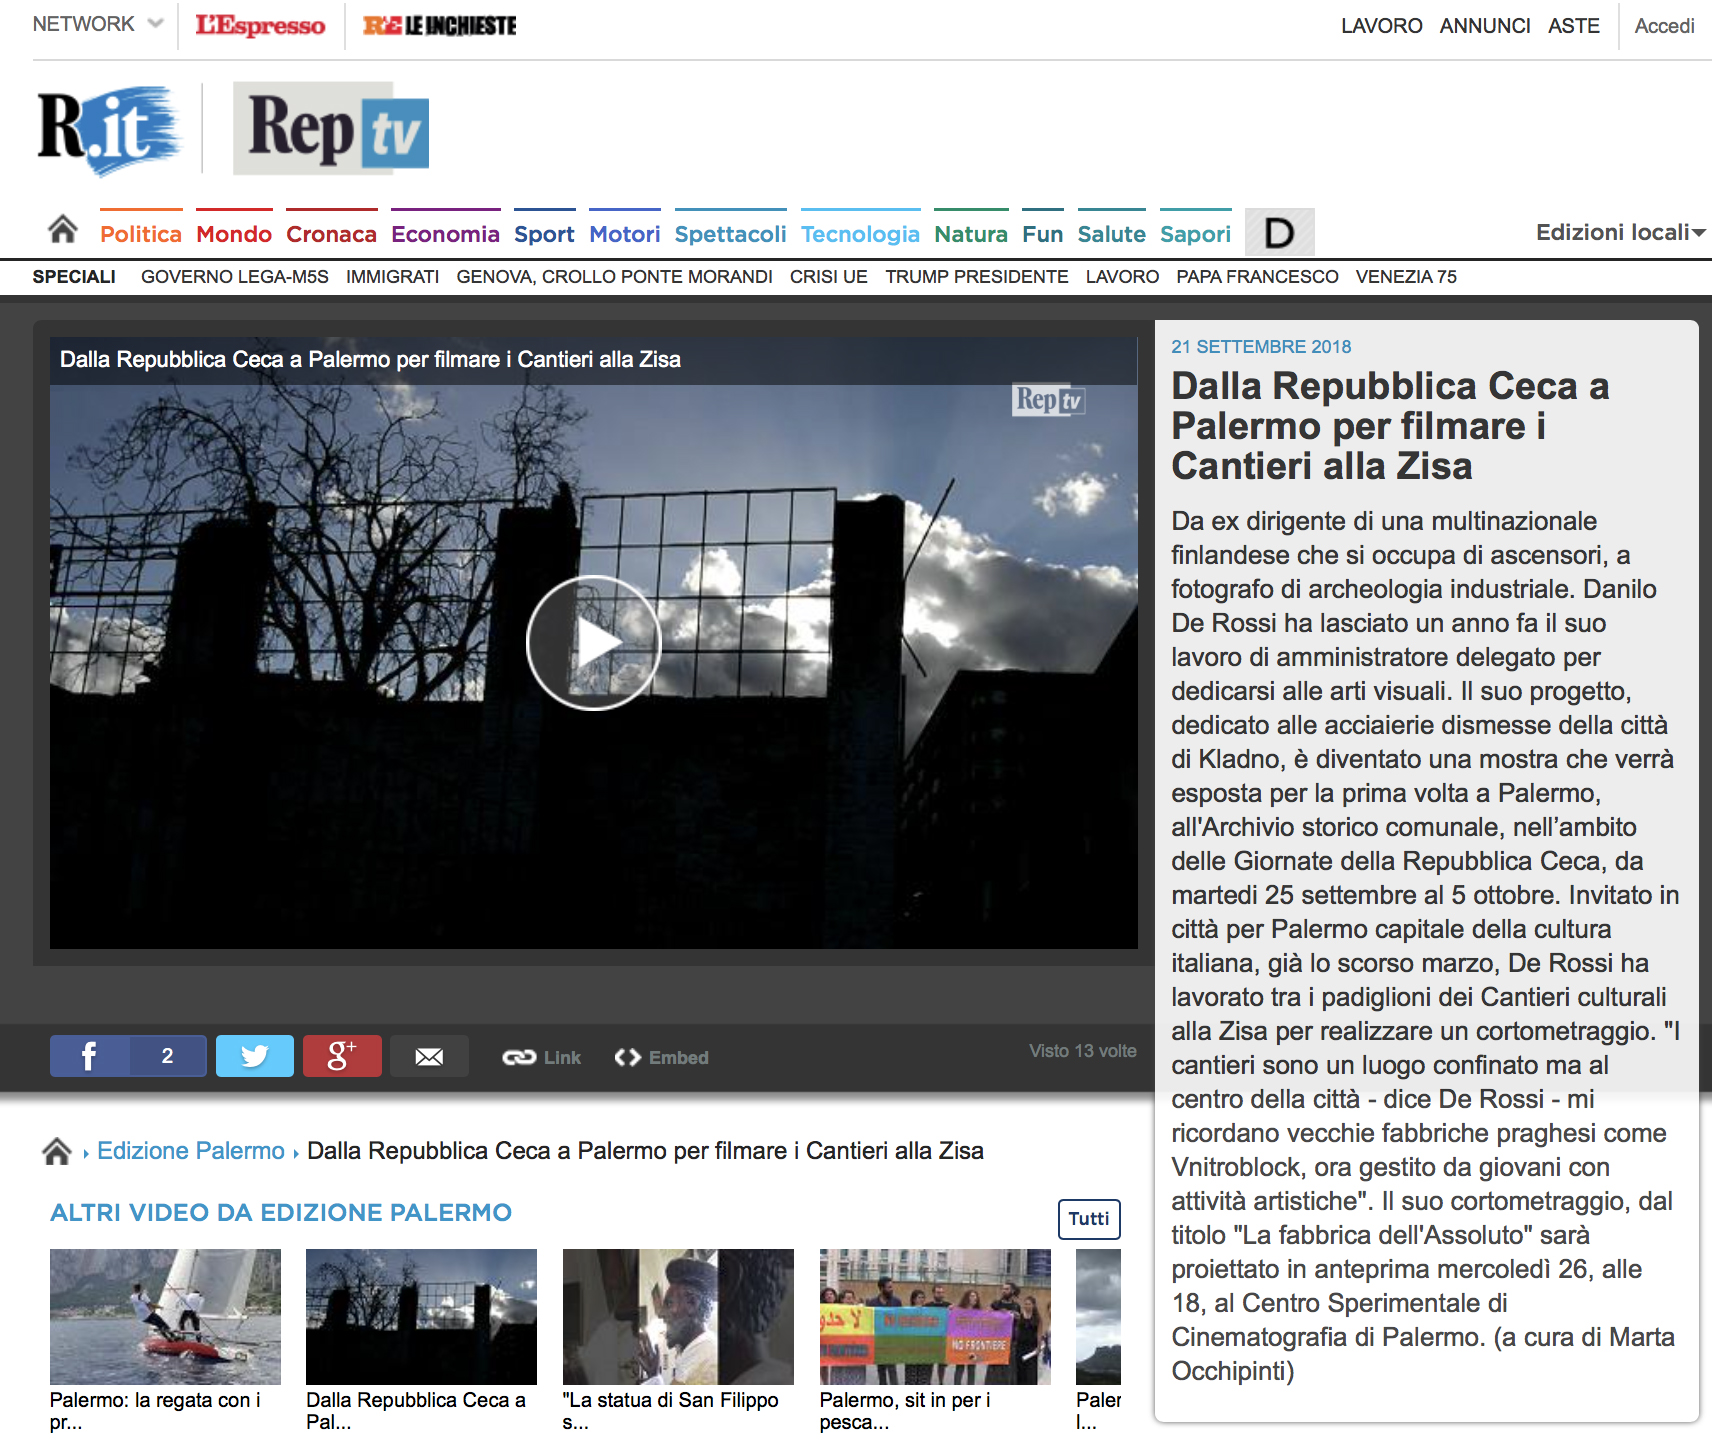 An article from Repubblica with a video on my events in Palermo